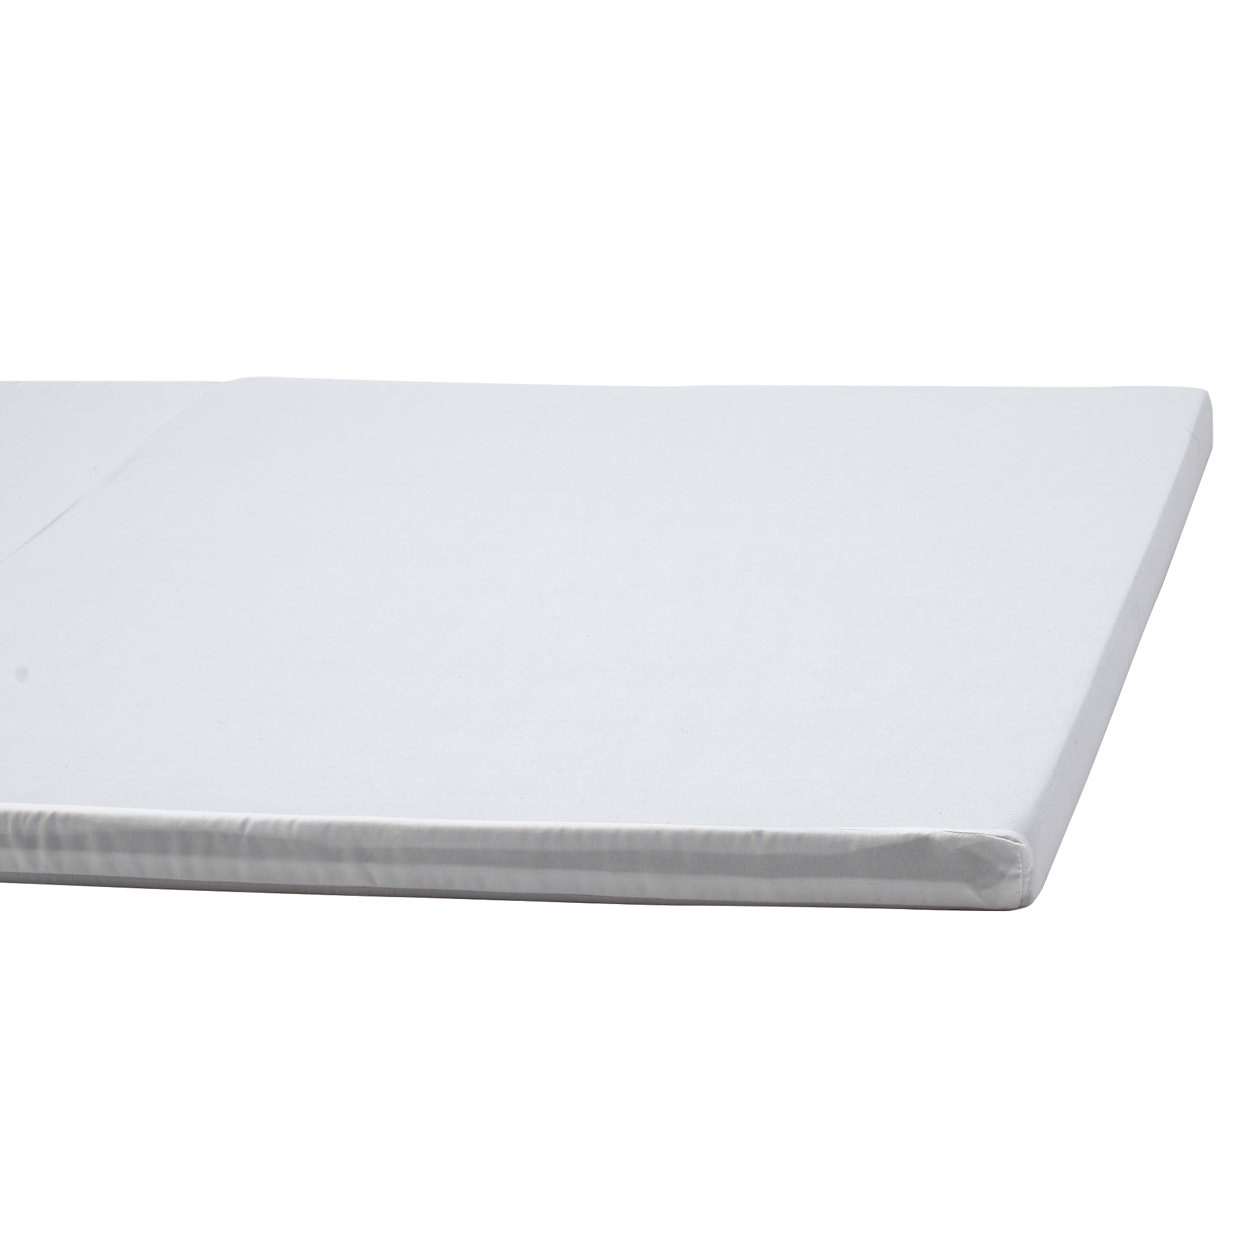 Urethane Foam Mattress For Futon S